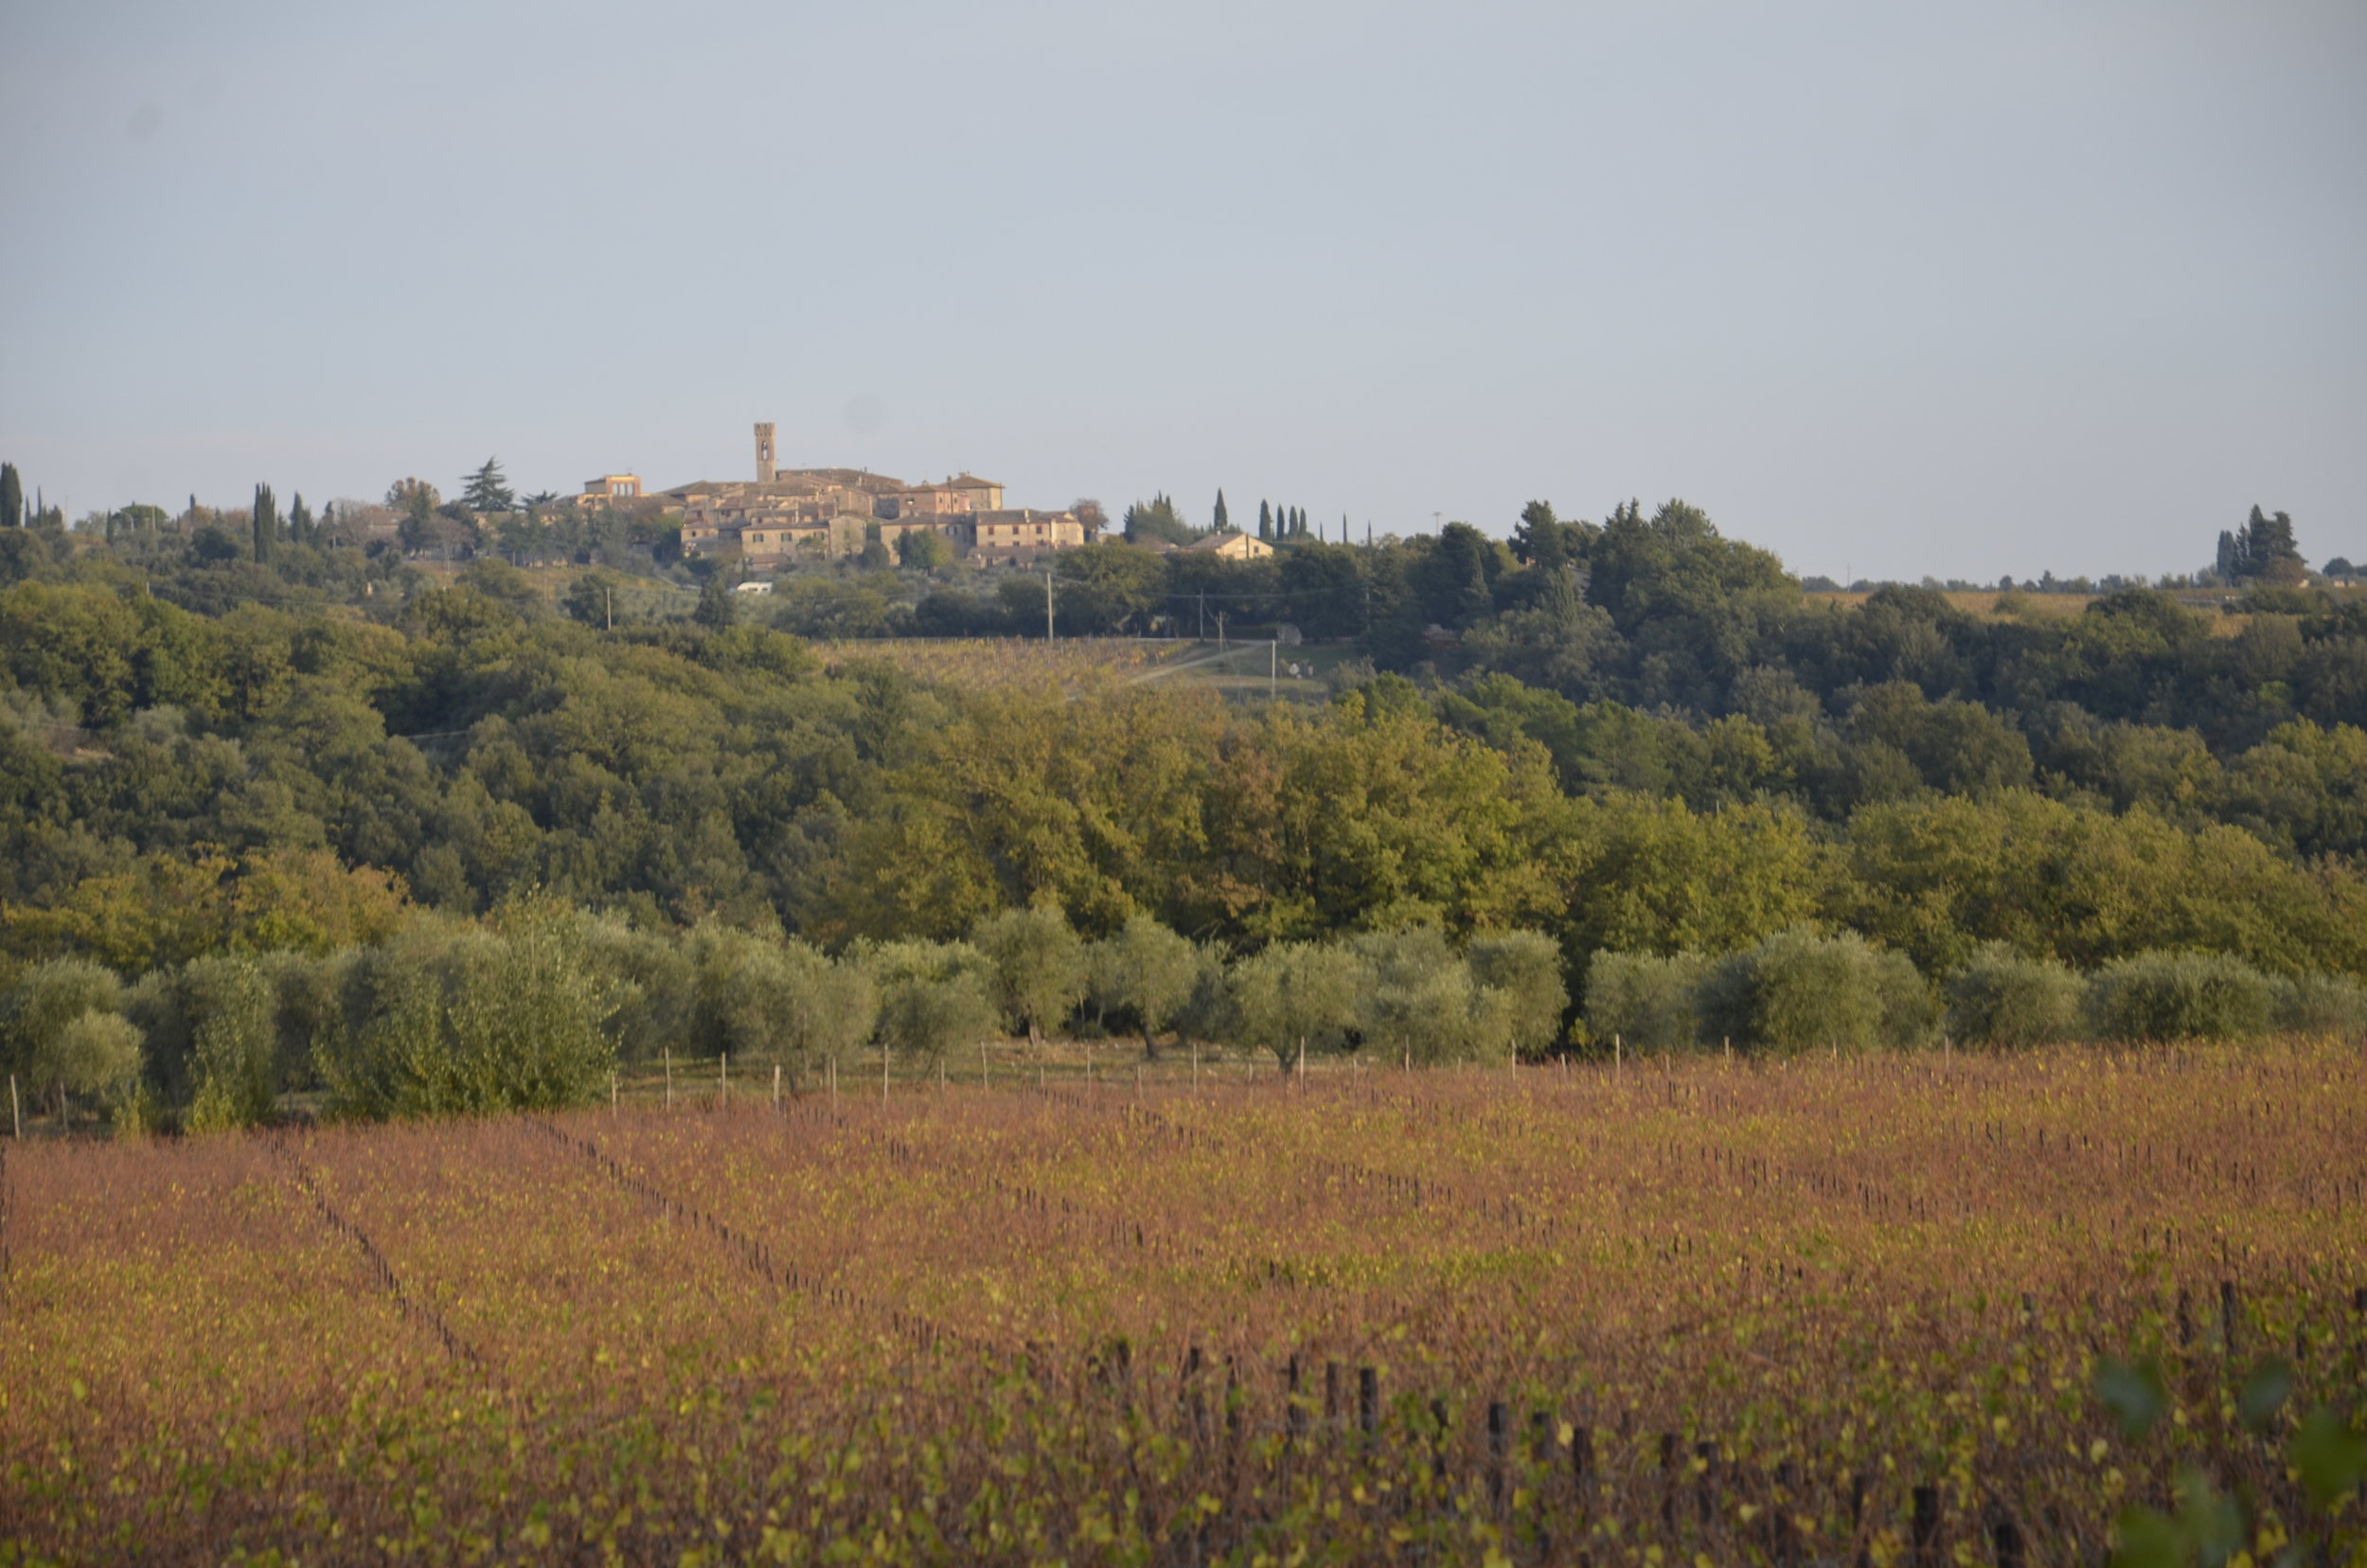 grapevines in the foreground and olive trees behind